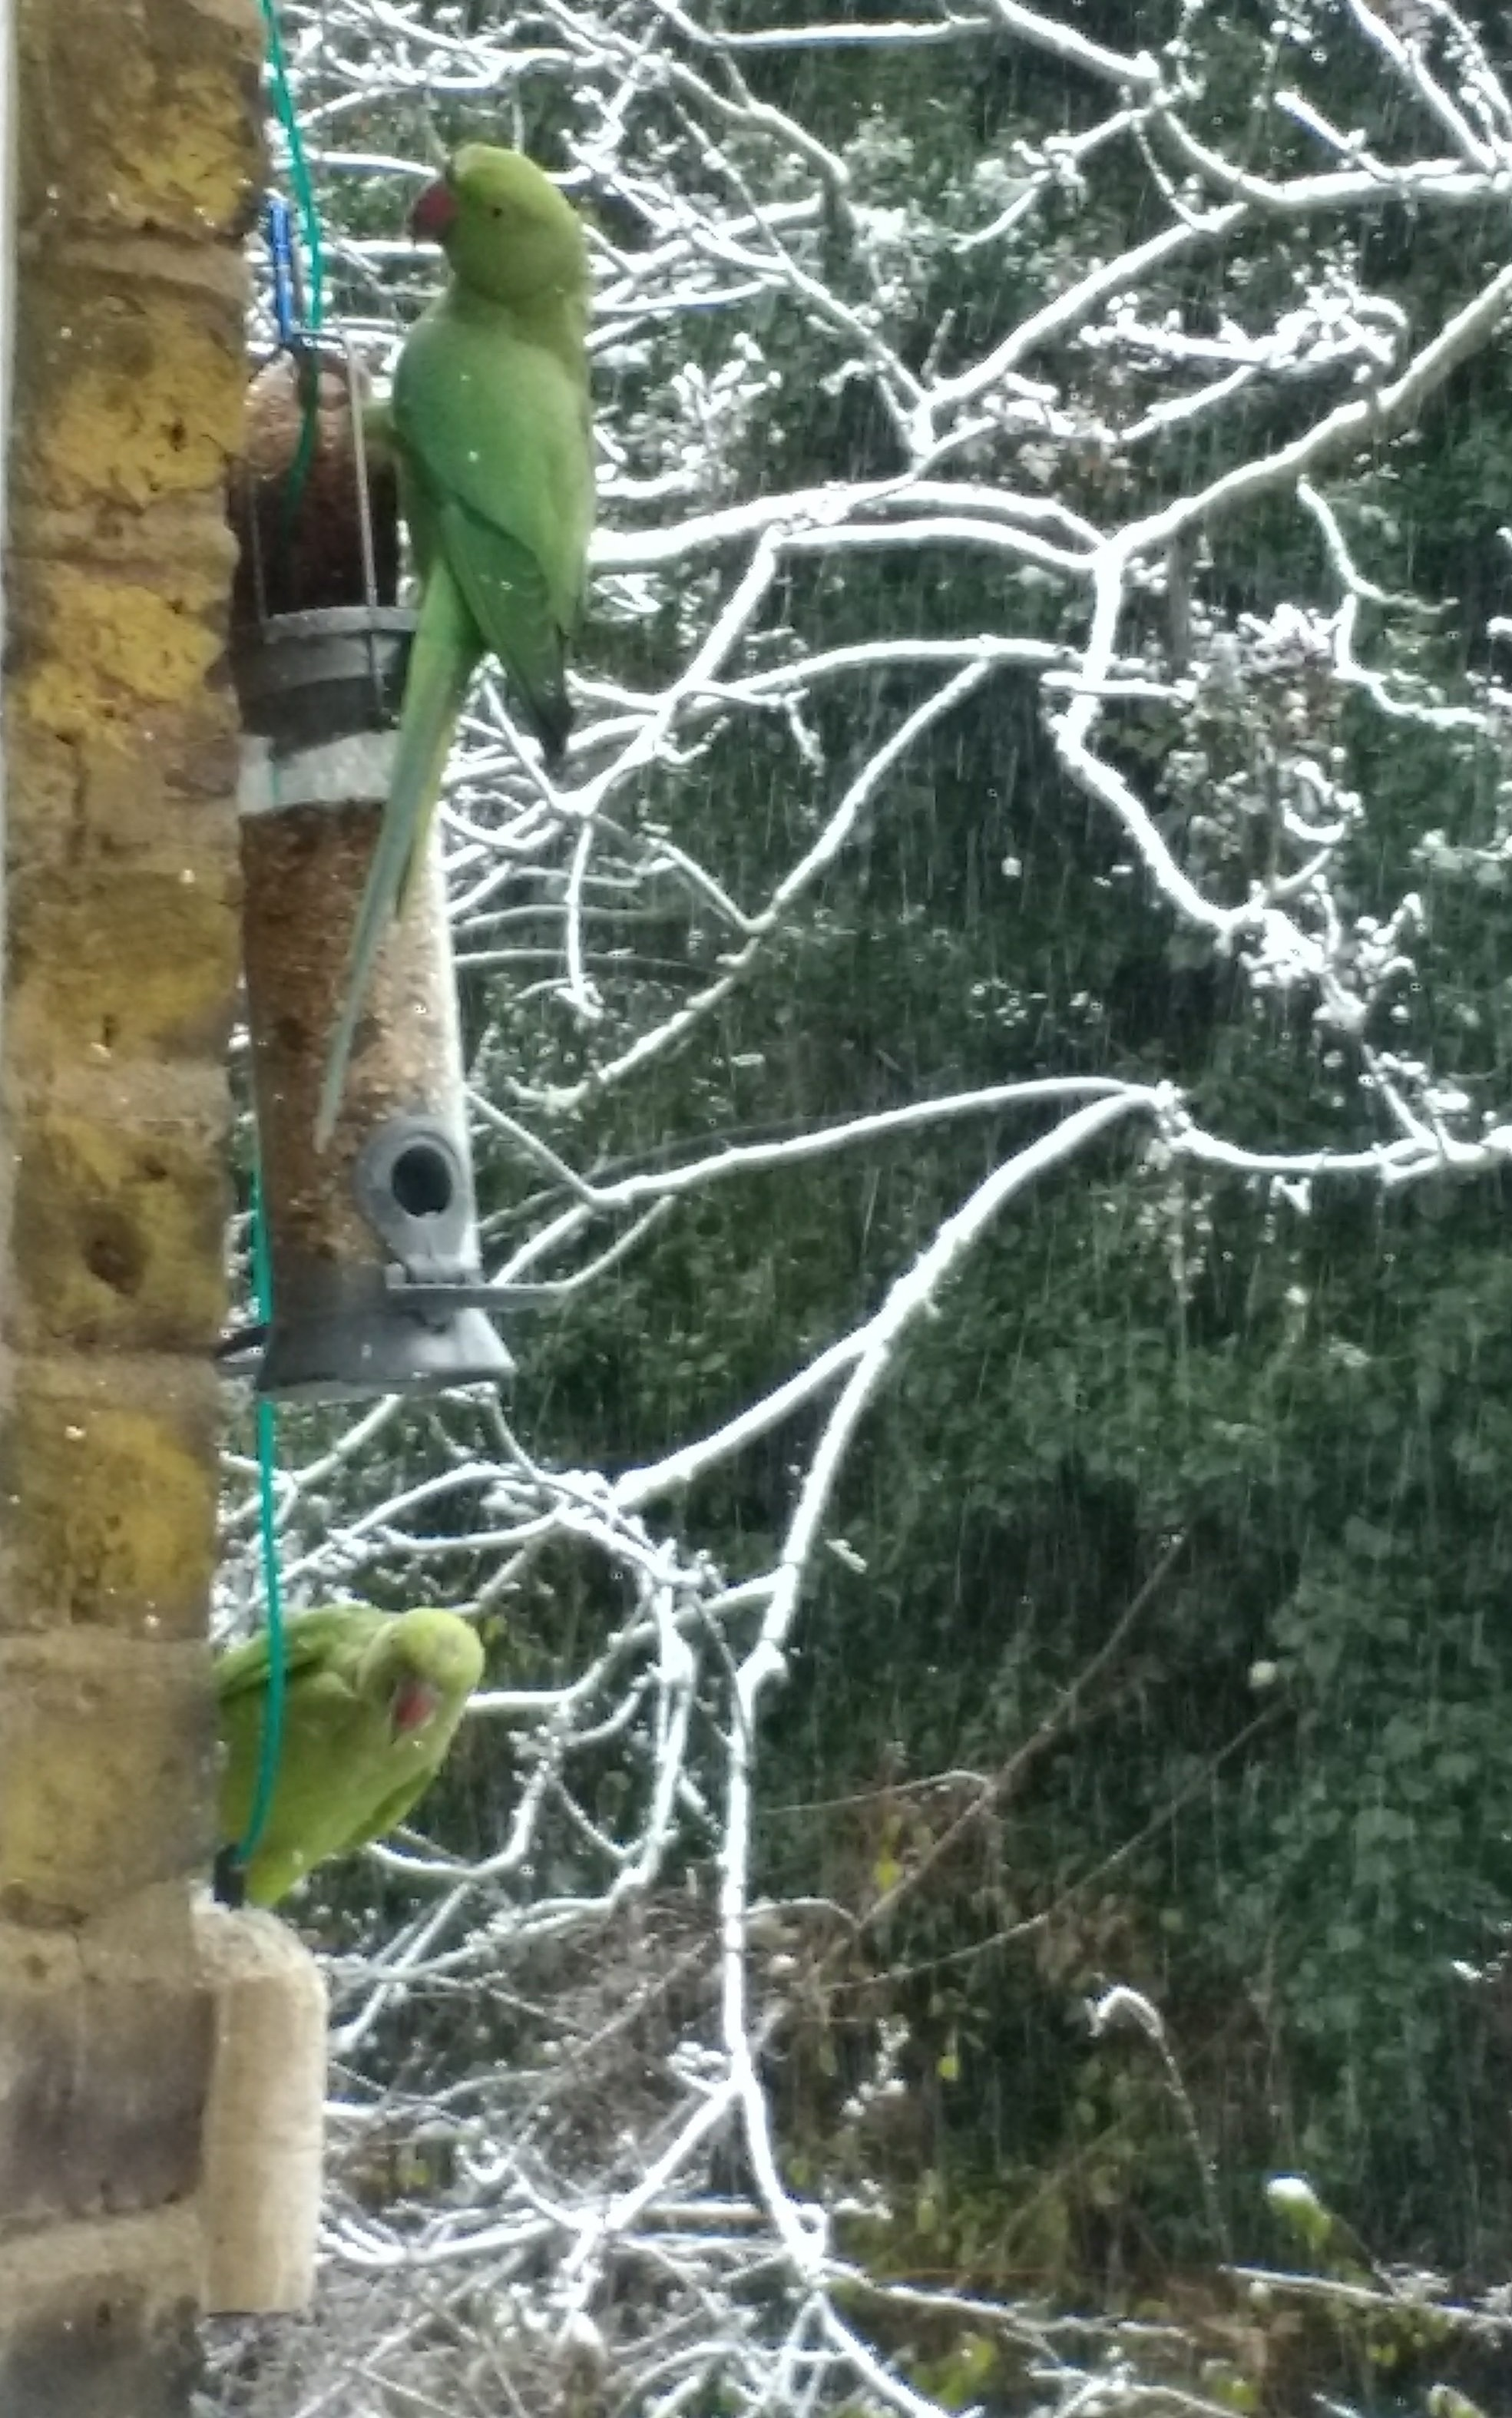 Wild parakeets at my window in London in wintertime